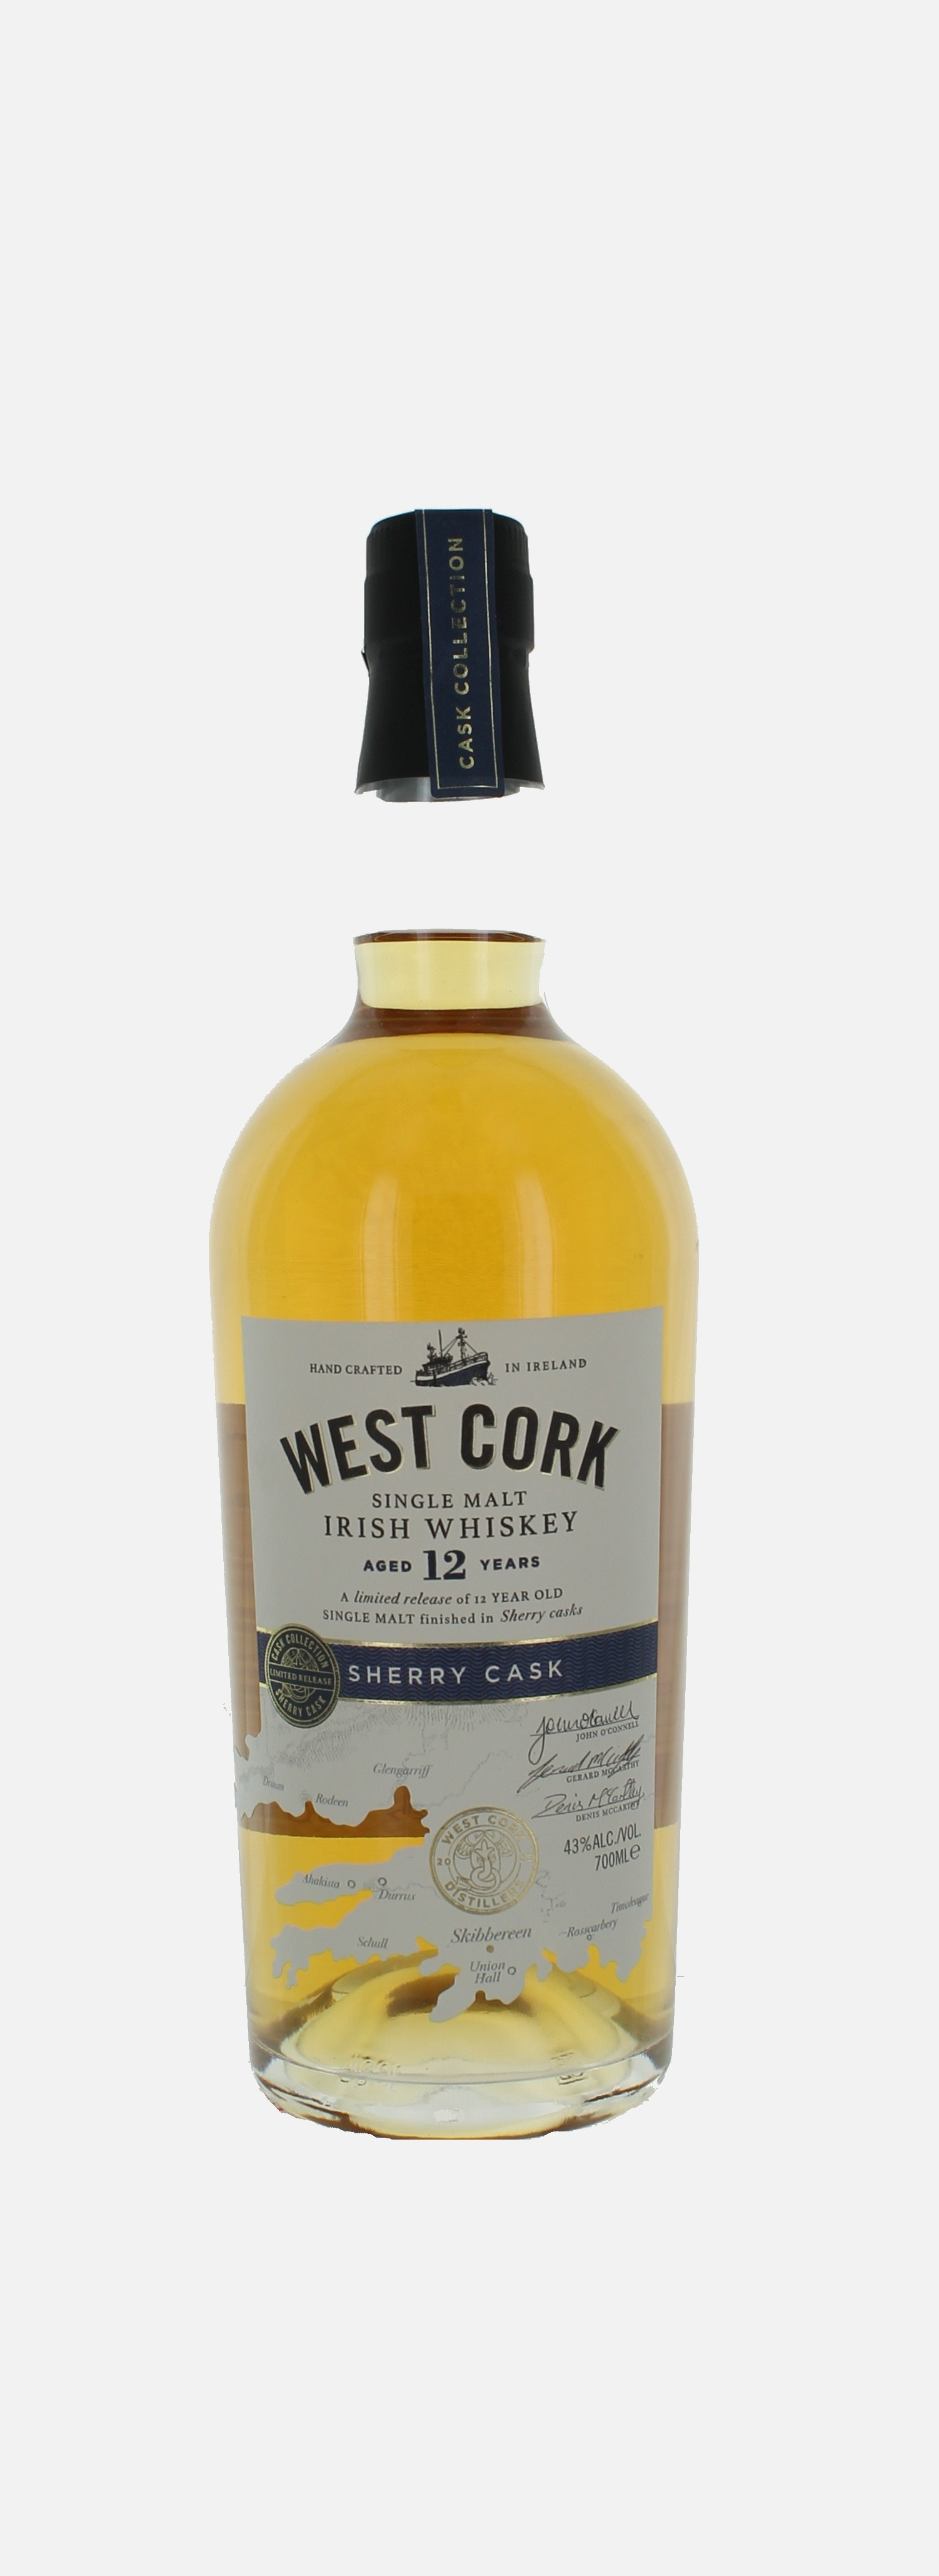 West Cork Sherry cask, Single Malt Irish Whiskey